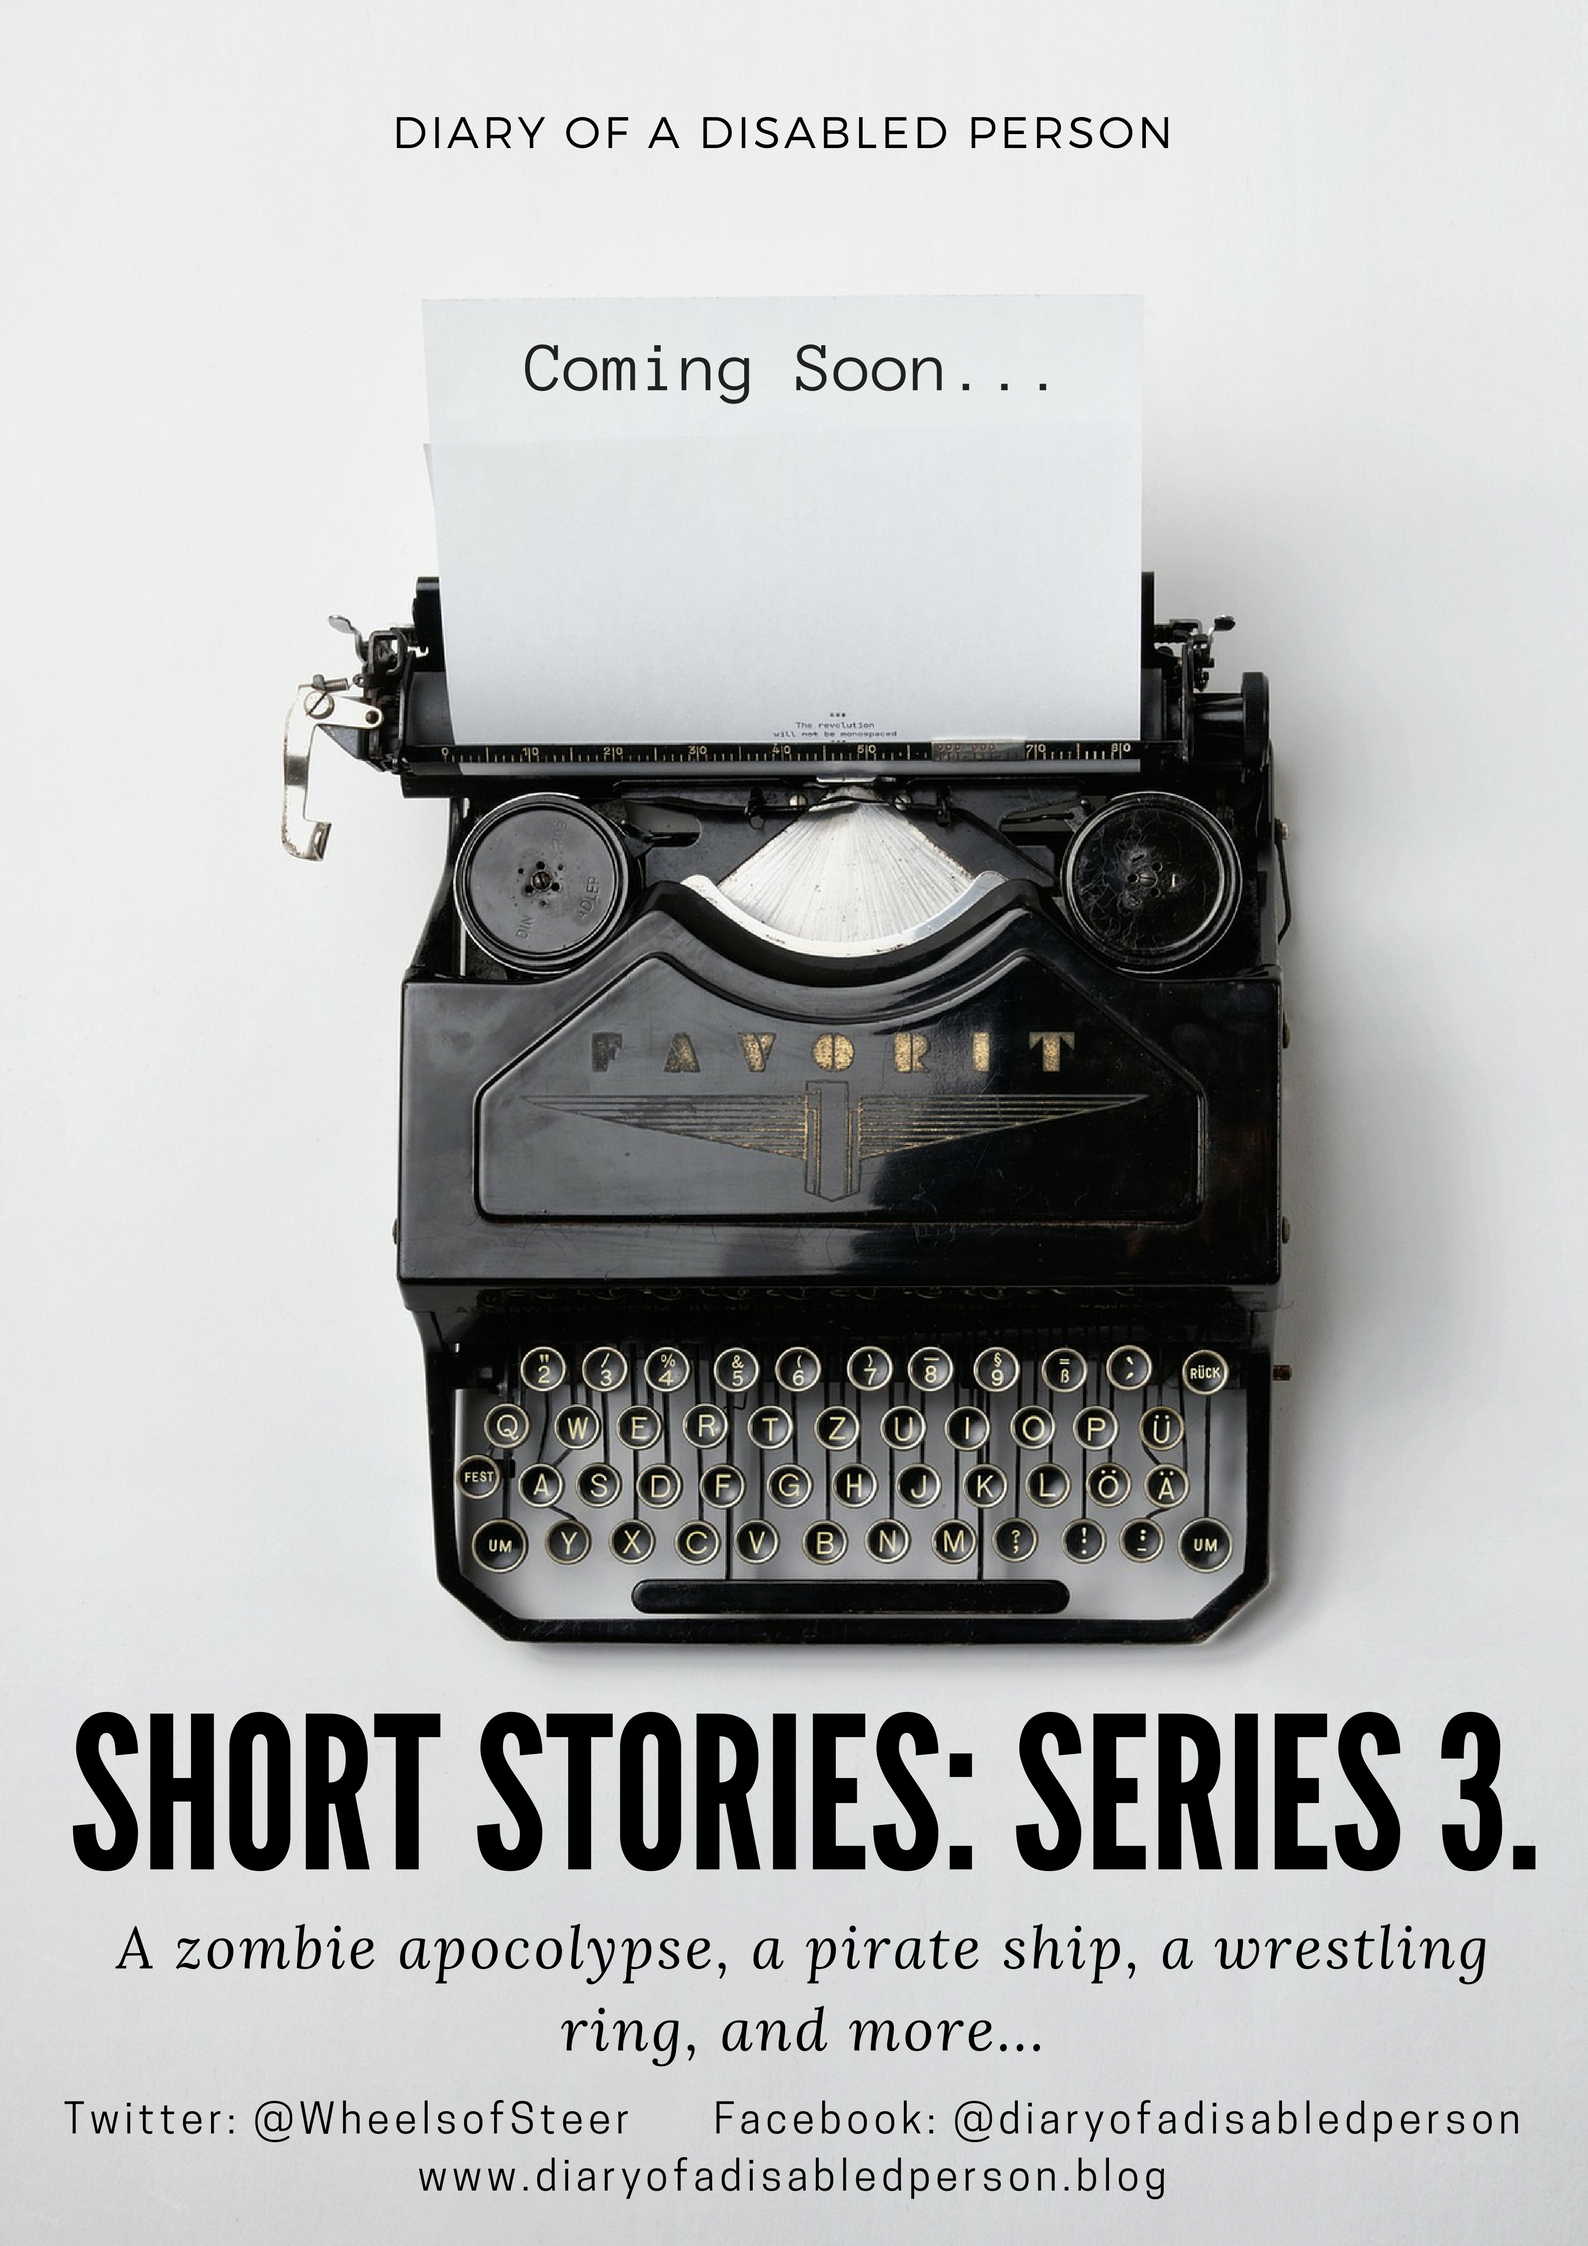 """Image description: poster for series 3 of my short stories reading """"Diary of a Disabled Person. Coming soon... Short Stories: Series 3. A Zombie Apocalypse, a pirate ship, a wrestling ring, & more..."""""""